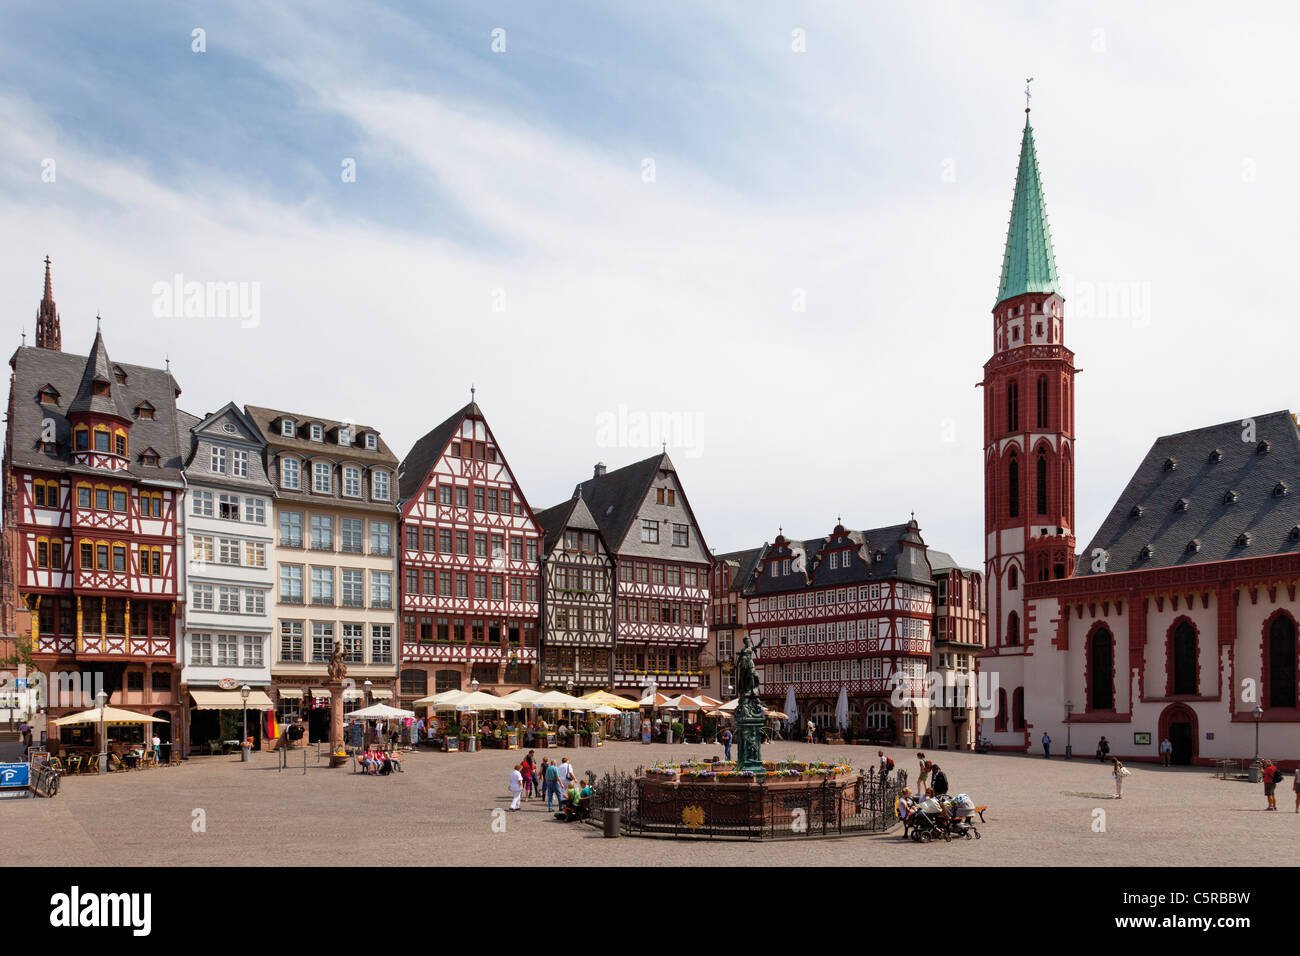 Germany, Hesse, Frankfurt, Roemerberg, View of Lady Justice statue with timberframe houses at city square - Stock Image